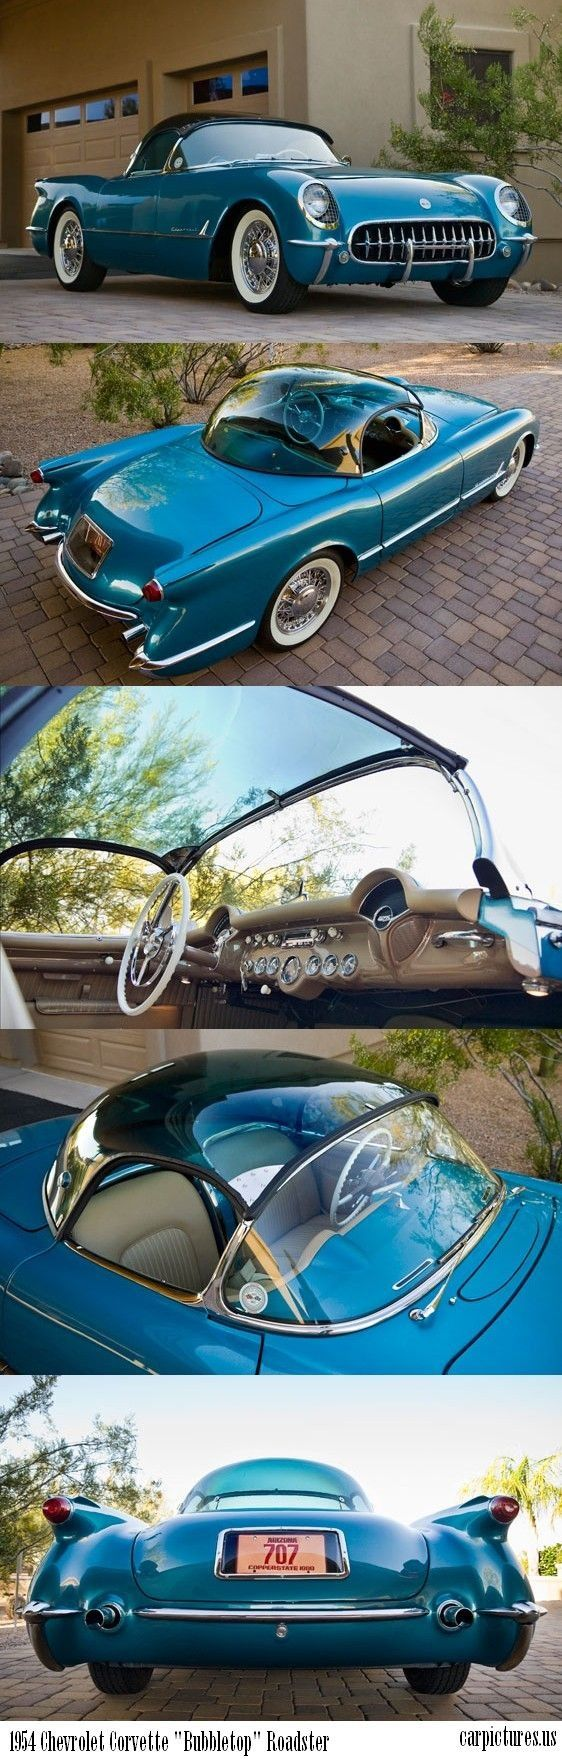 1954 Chevy Corvette...Brought to you by #Carinsuranceagents at #HouseofInsurance in #EugeneOregon